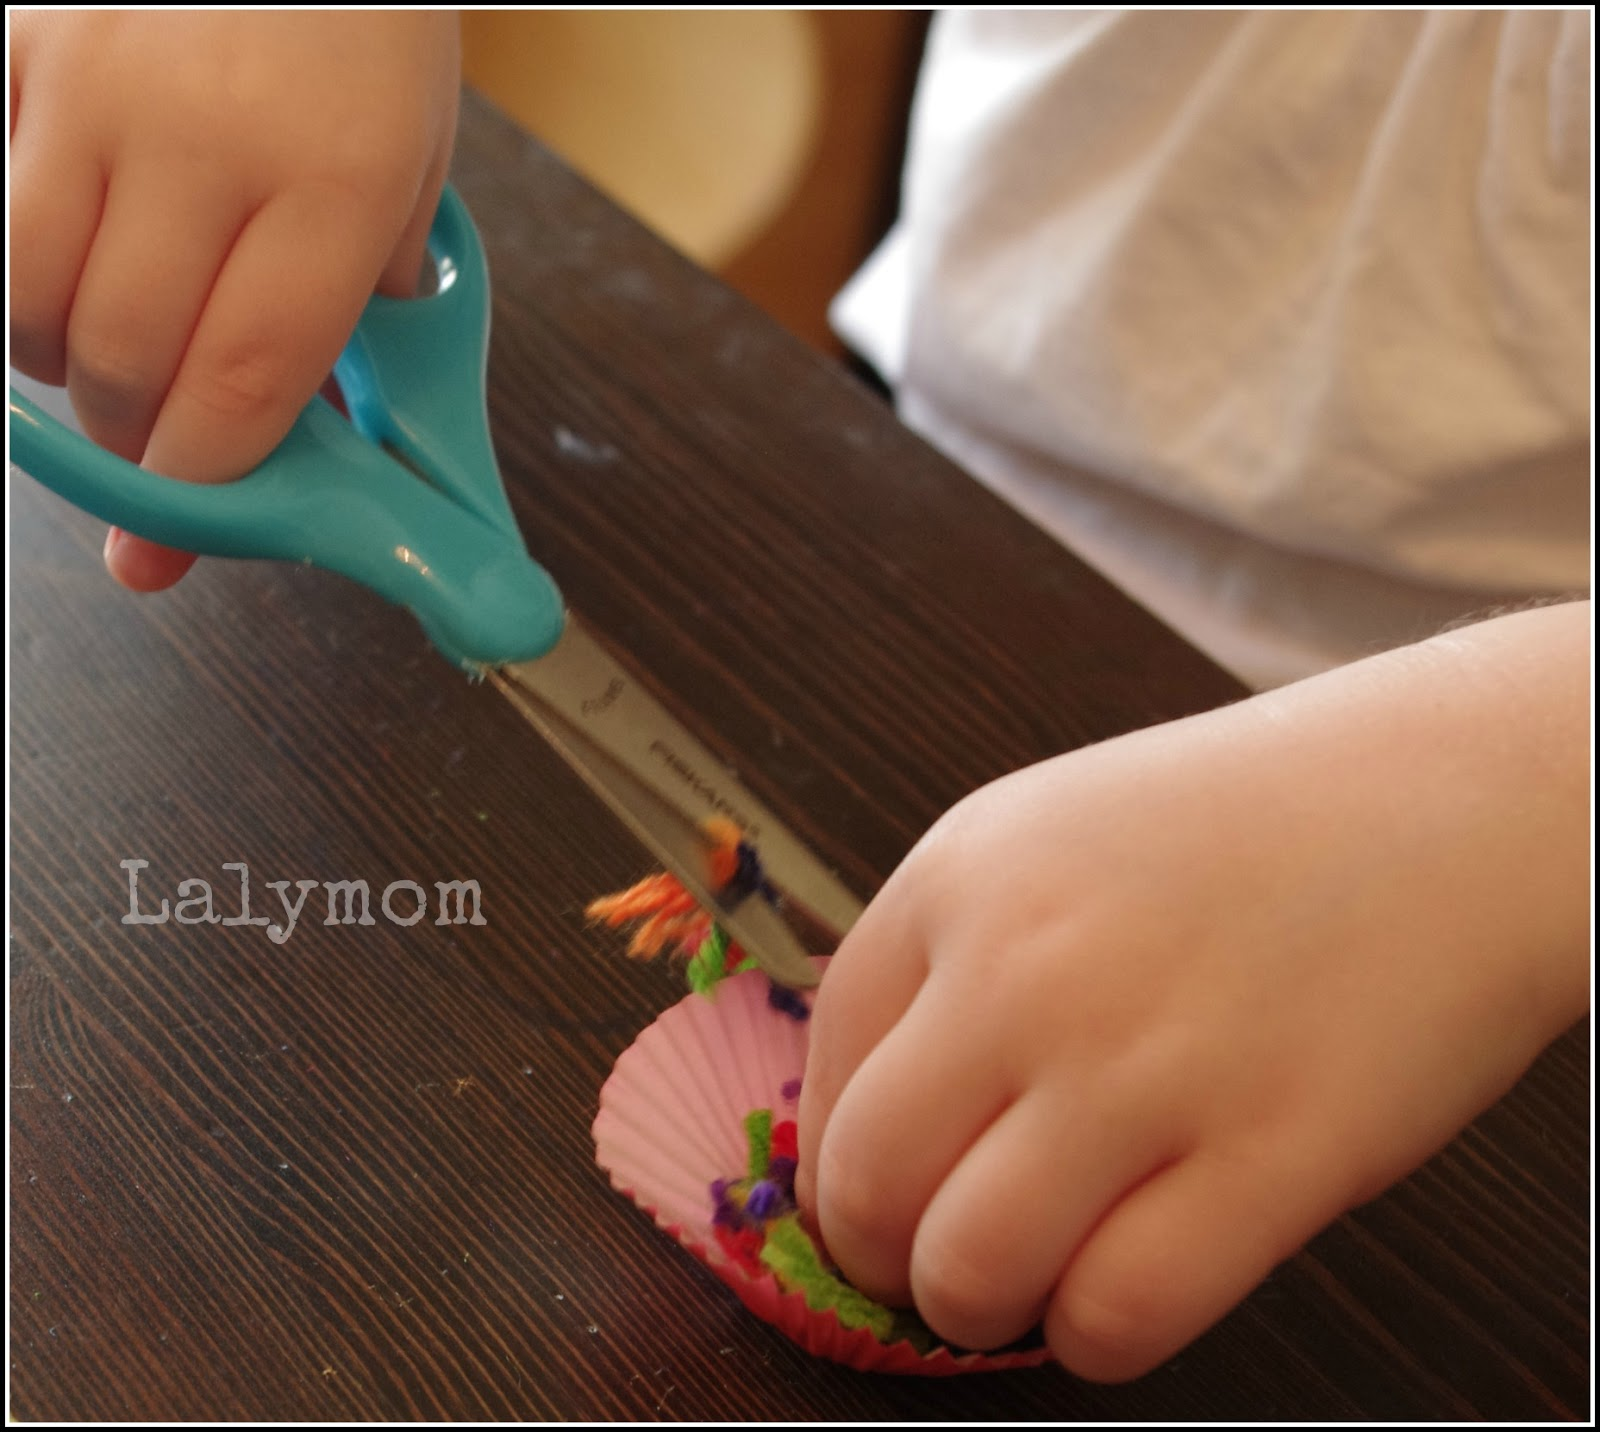 Scissor Practice Activity For Preschoolers